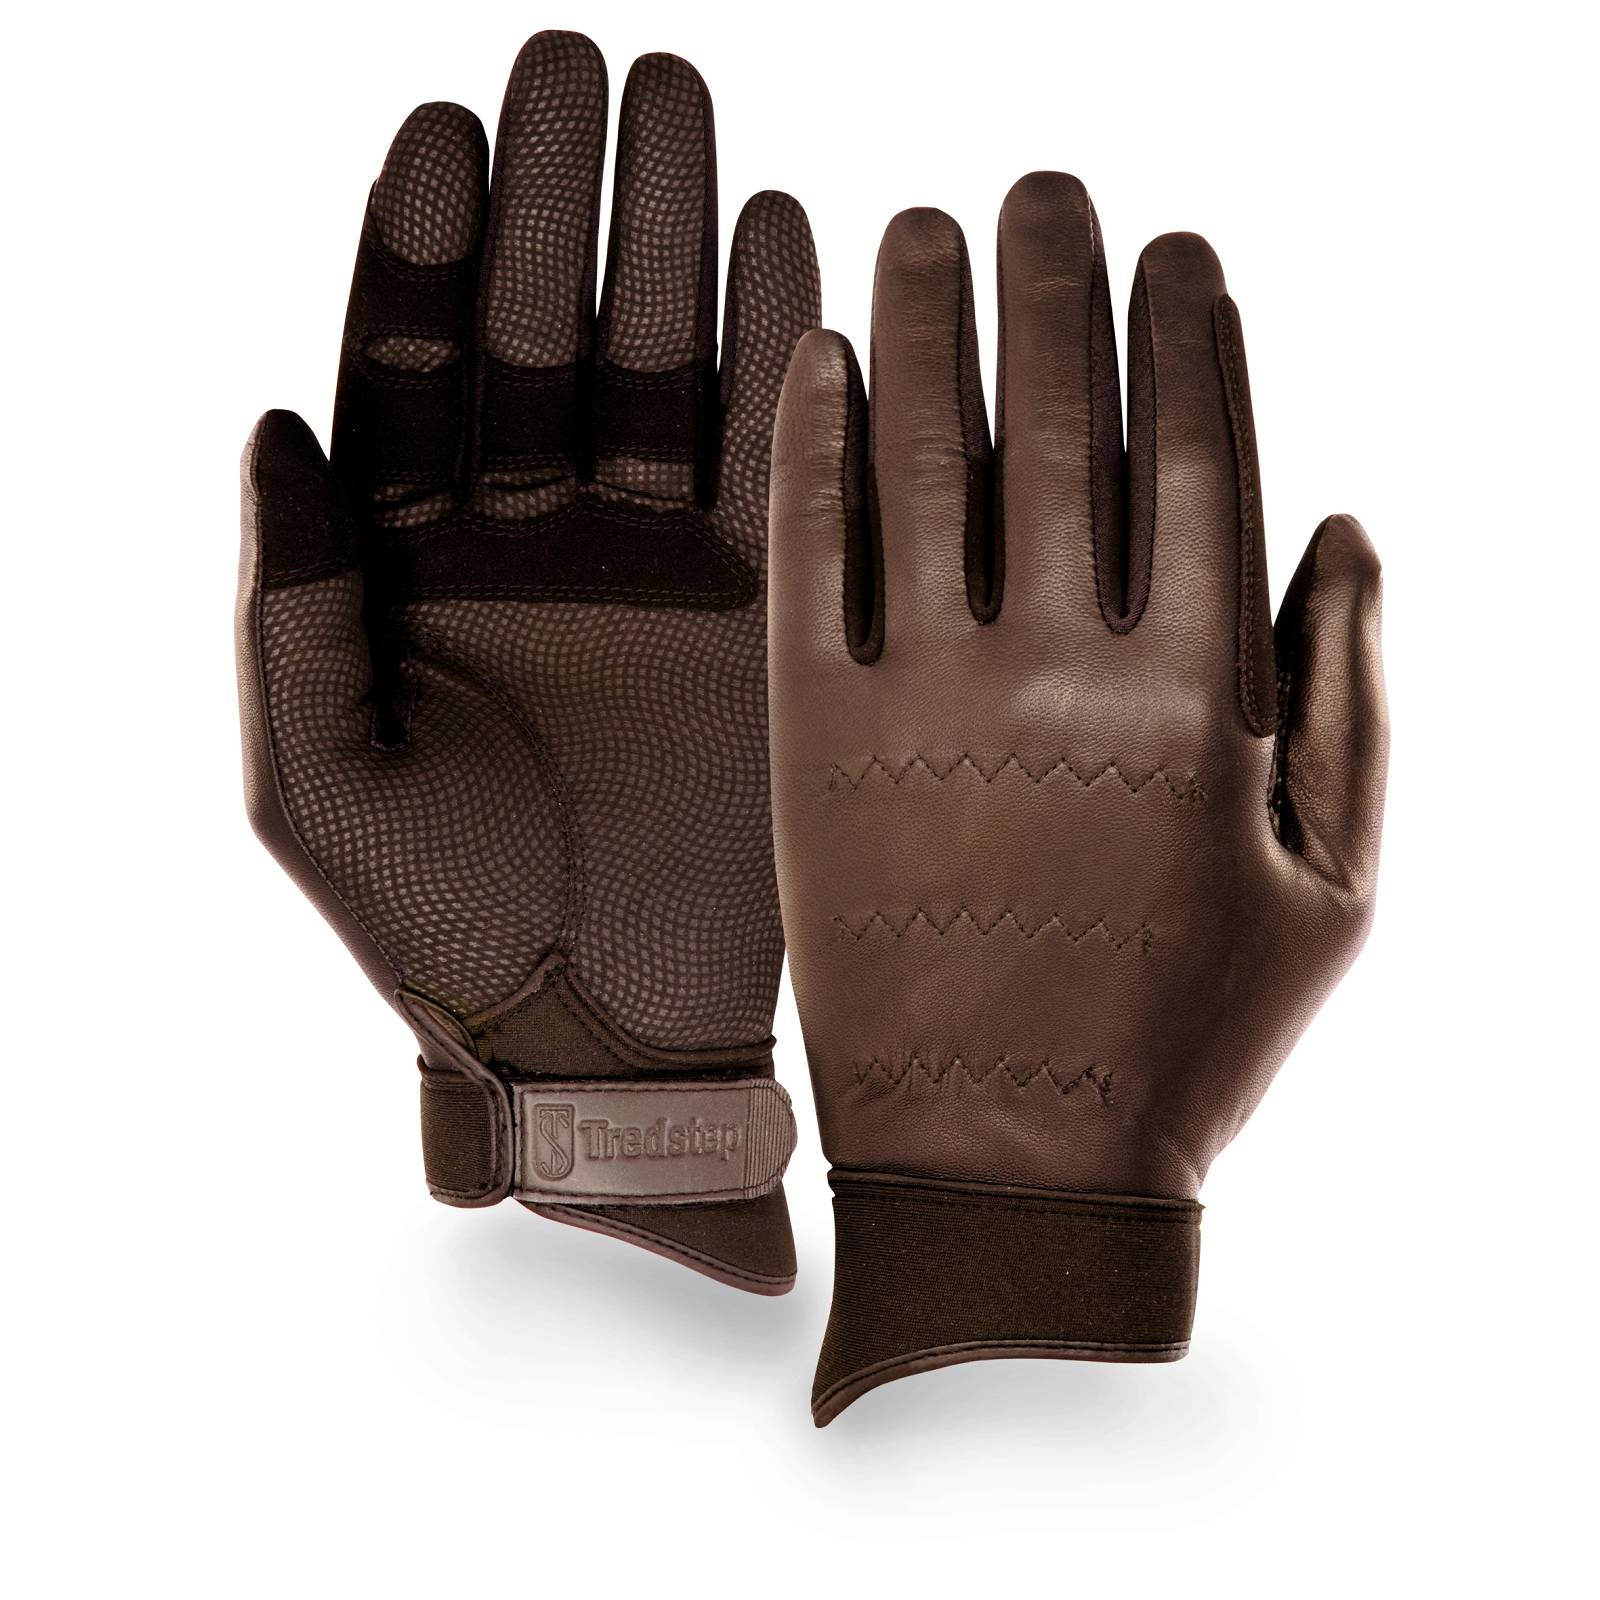 Tredstep Ireland Show Hunter Gloves